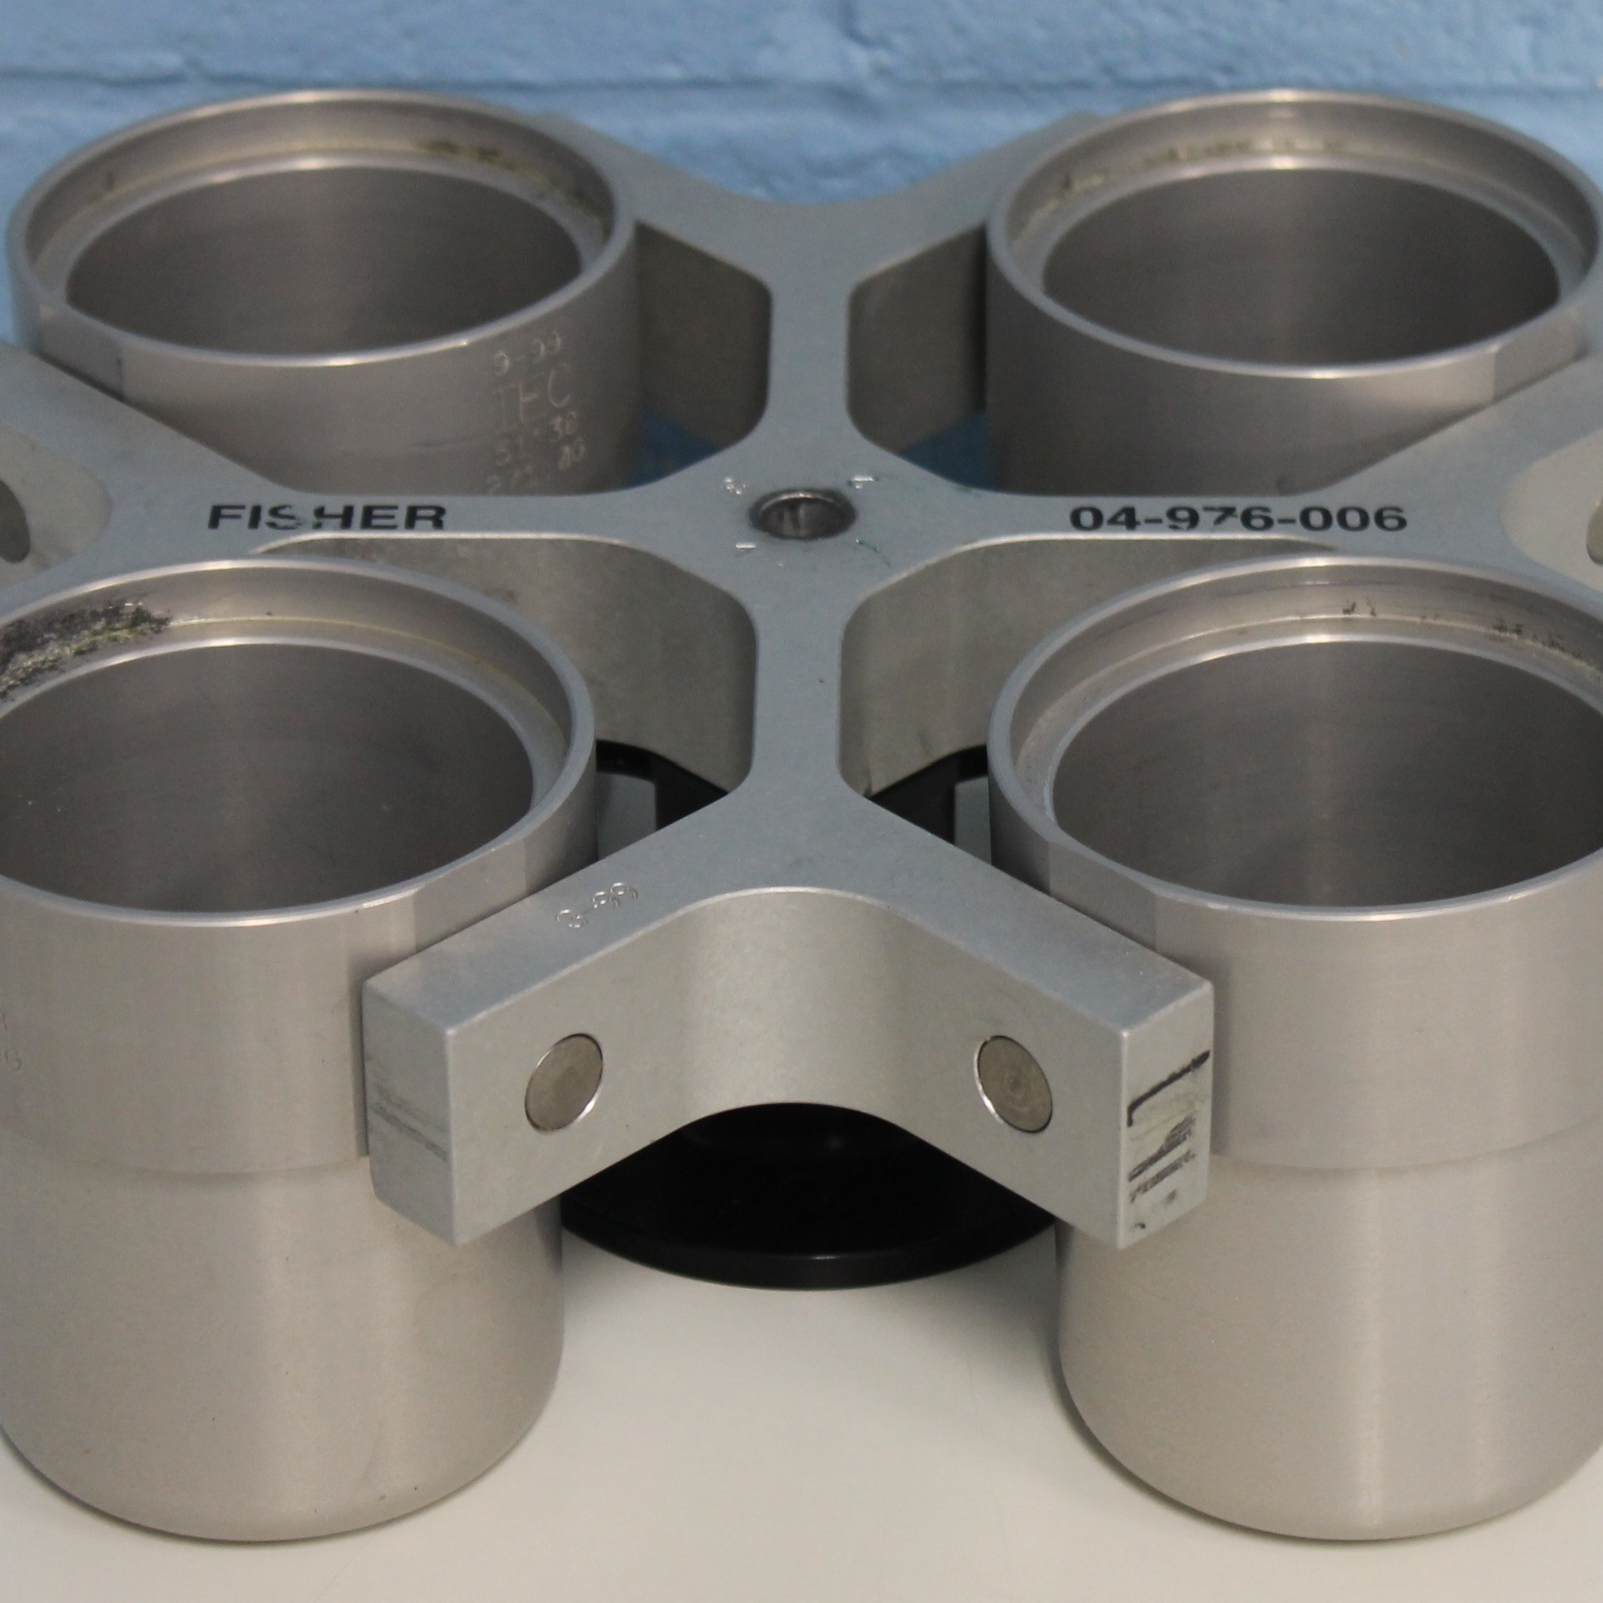 Fisher Scientific Rotor 04-976-006 4-place Swing Bucket, 4X250mL Image